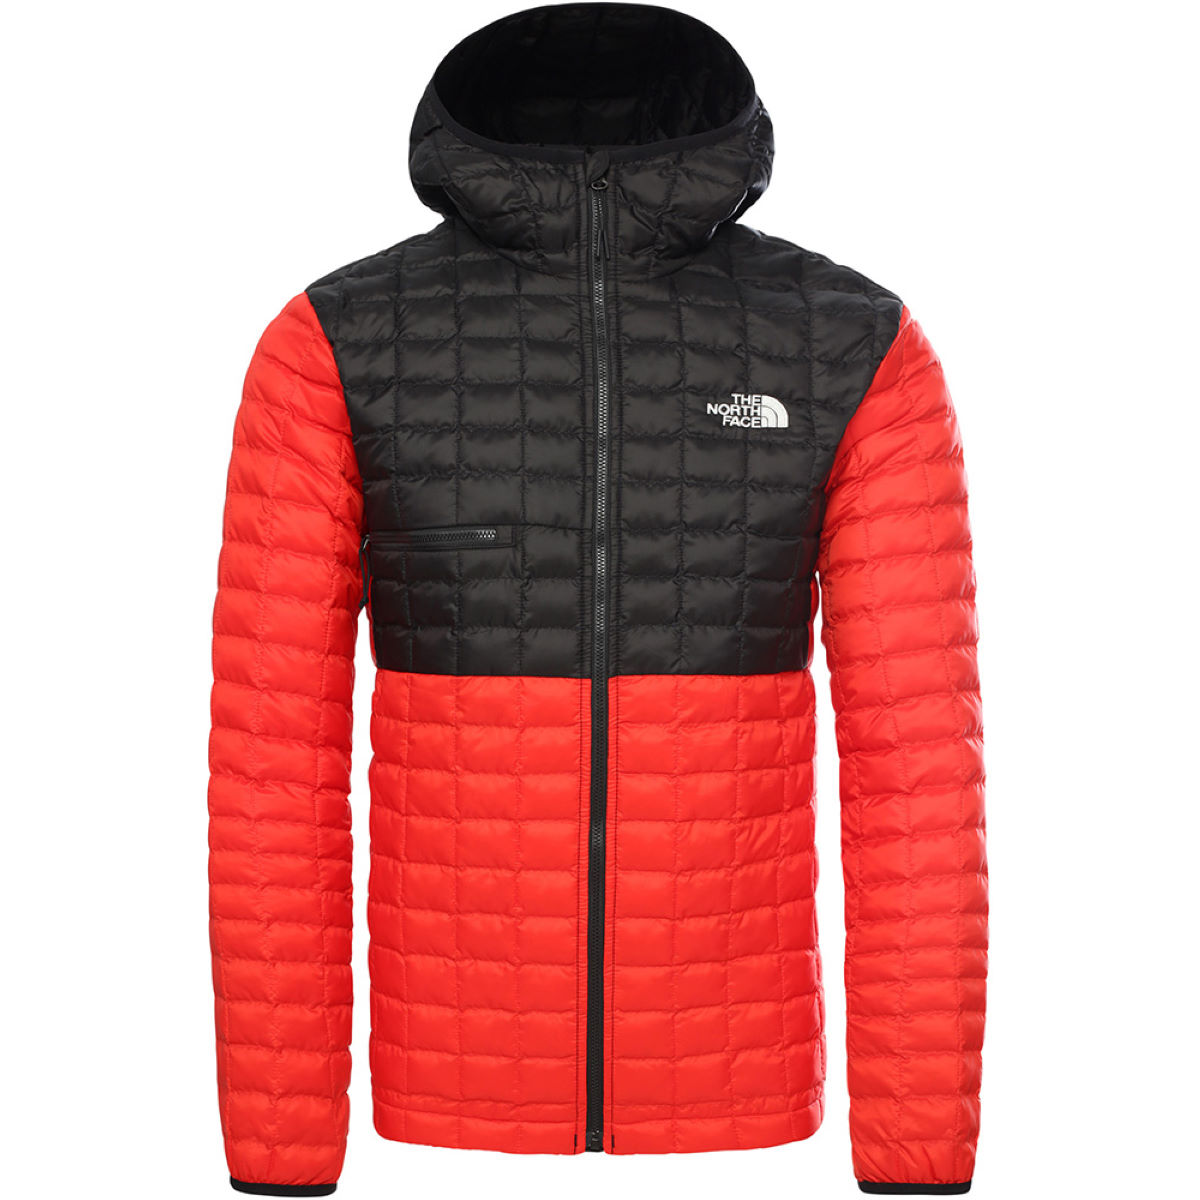 The North Face The North Face ThermoBall™ Eco Light Hoodie   Jackets